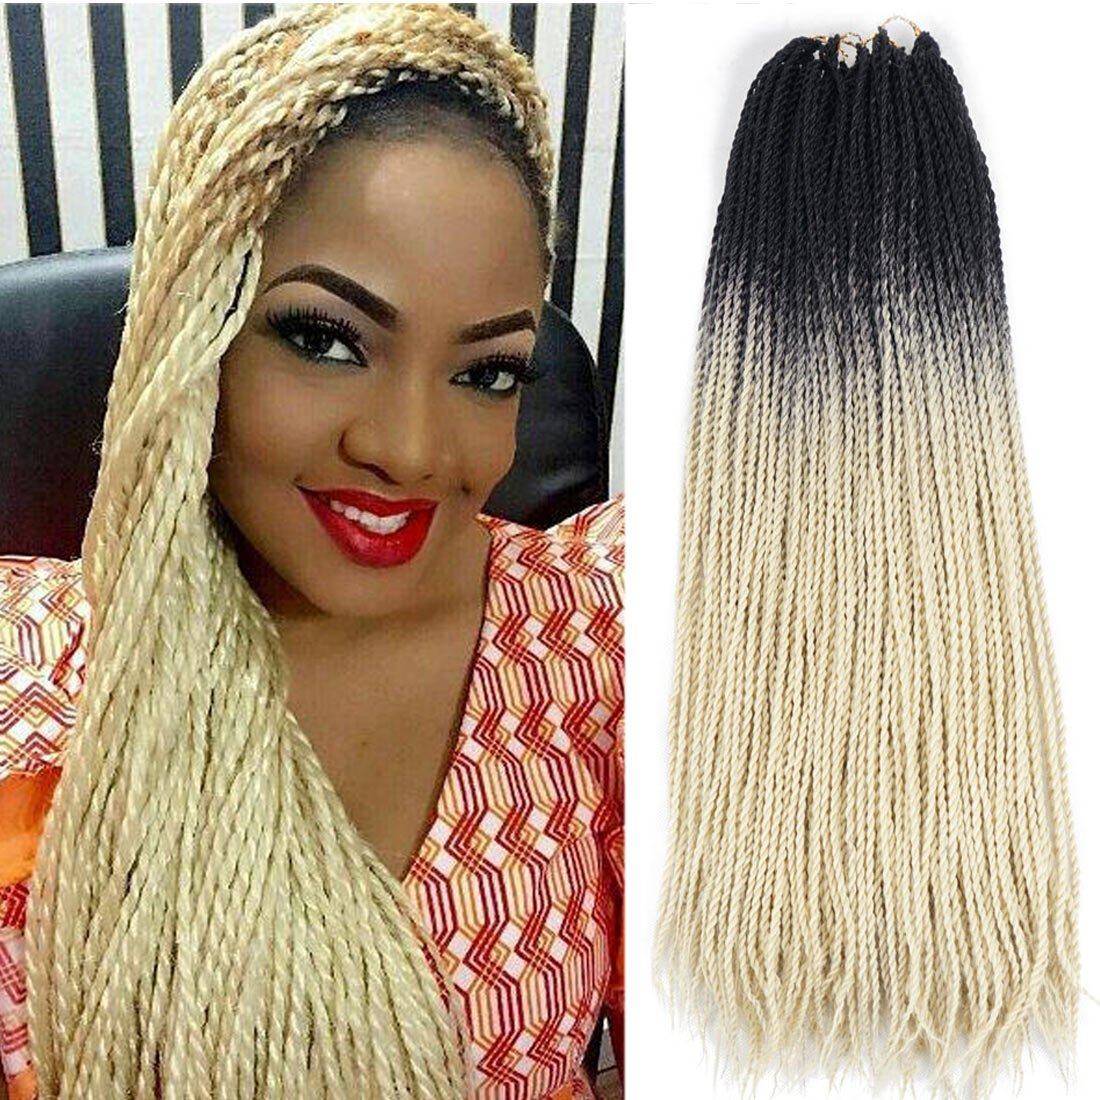 Amazoncom Ombre Senegalese Twist 2x Kanekalon Synthetic Crochet